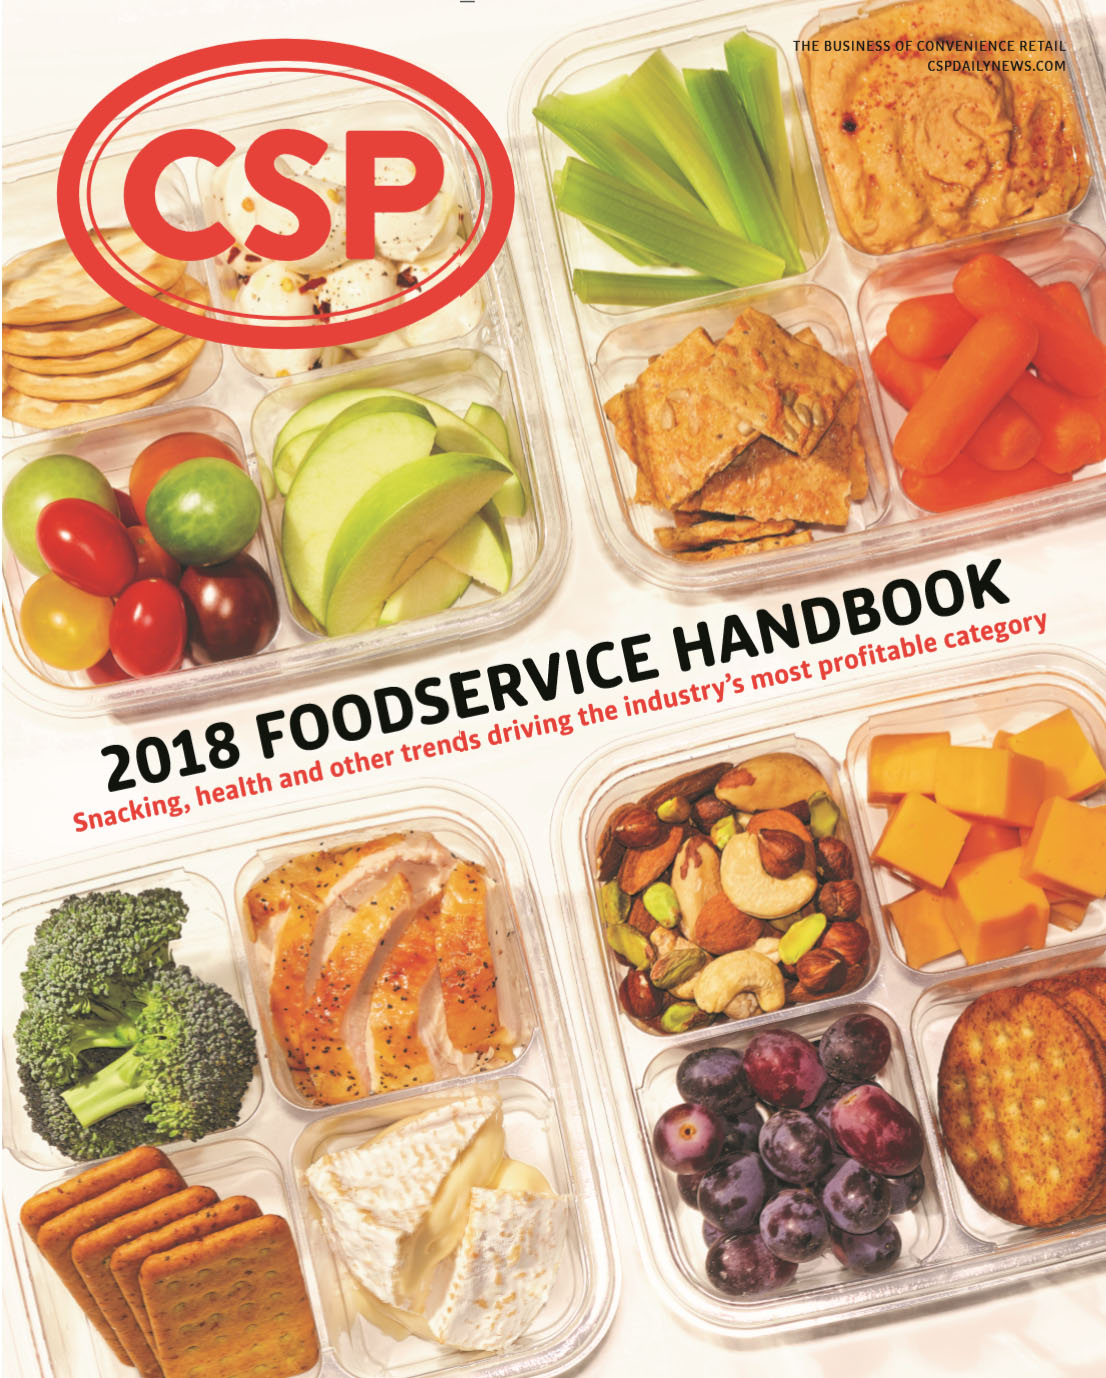 CSP Daily News Magazine CSP Special Issue (2018 Foodservice Handbook) | June 2018 Issue